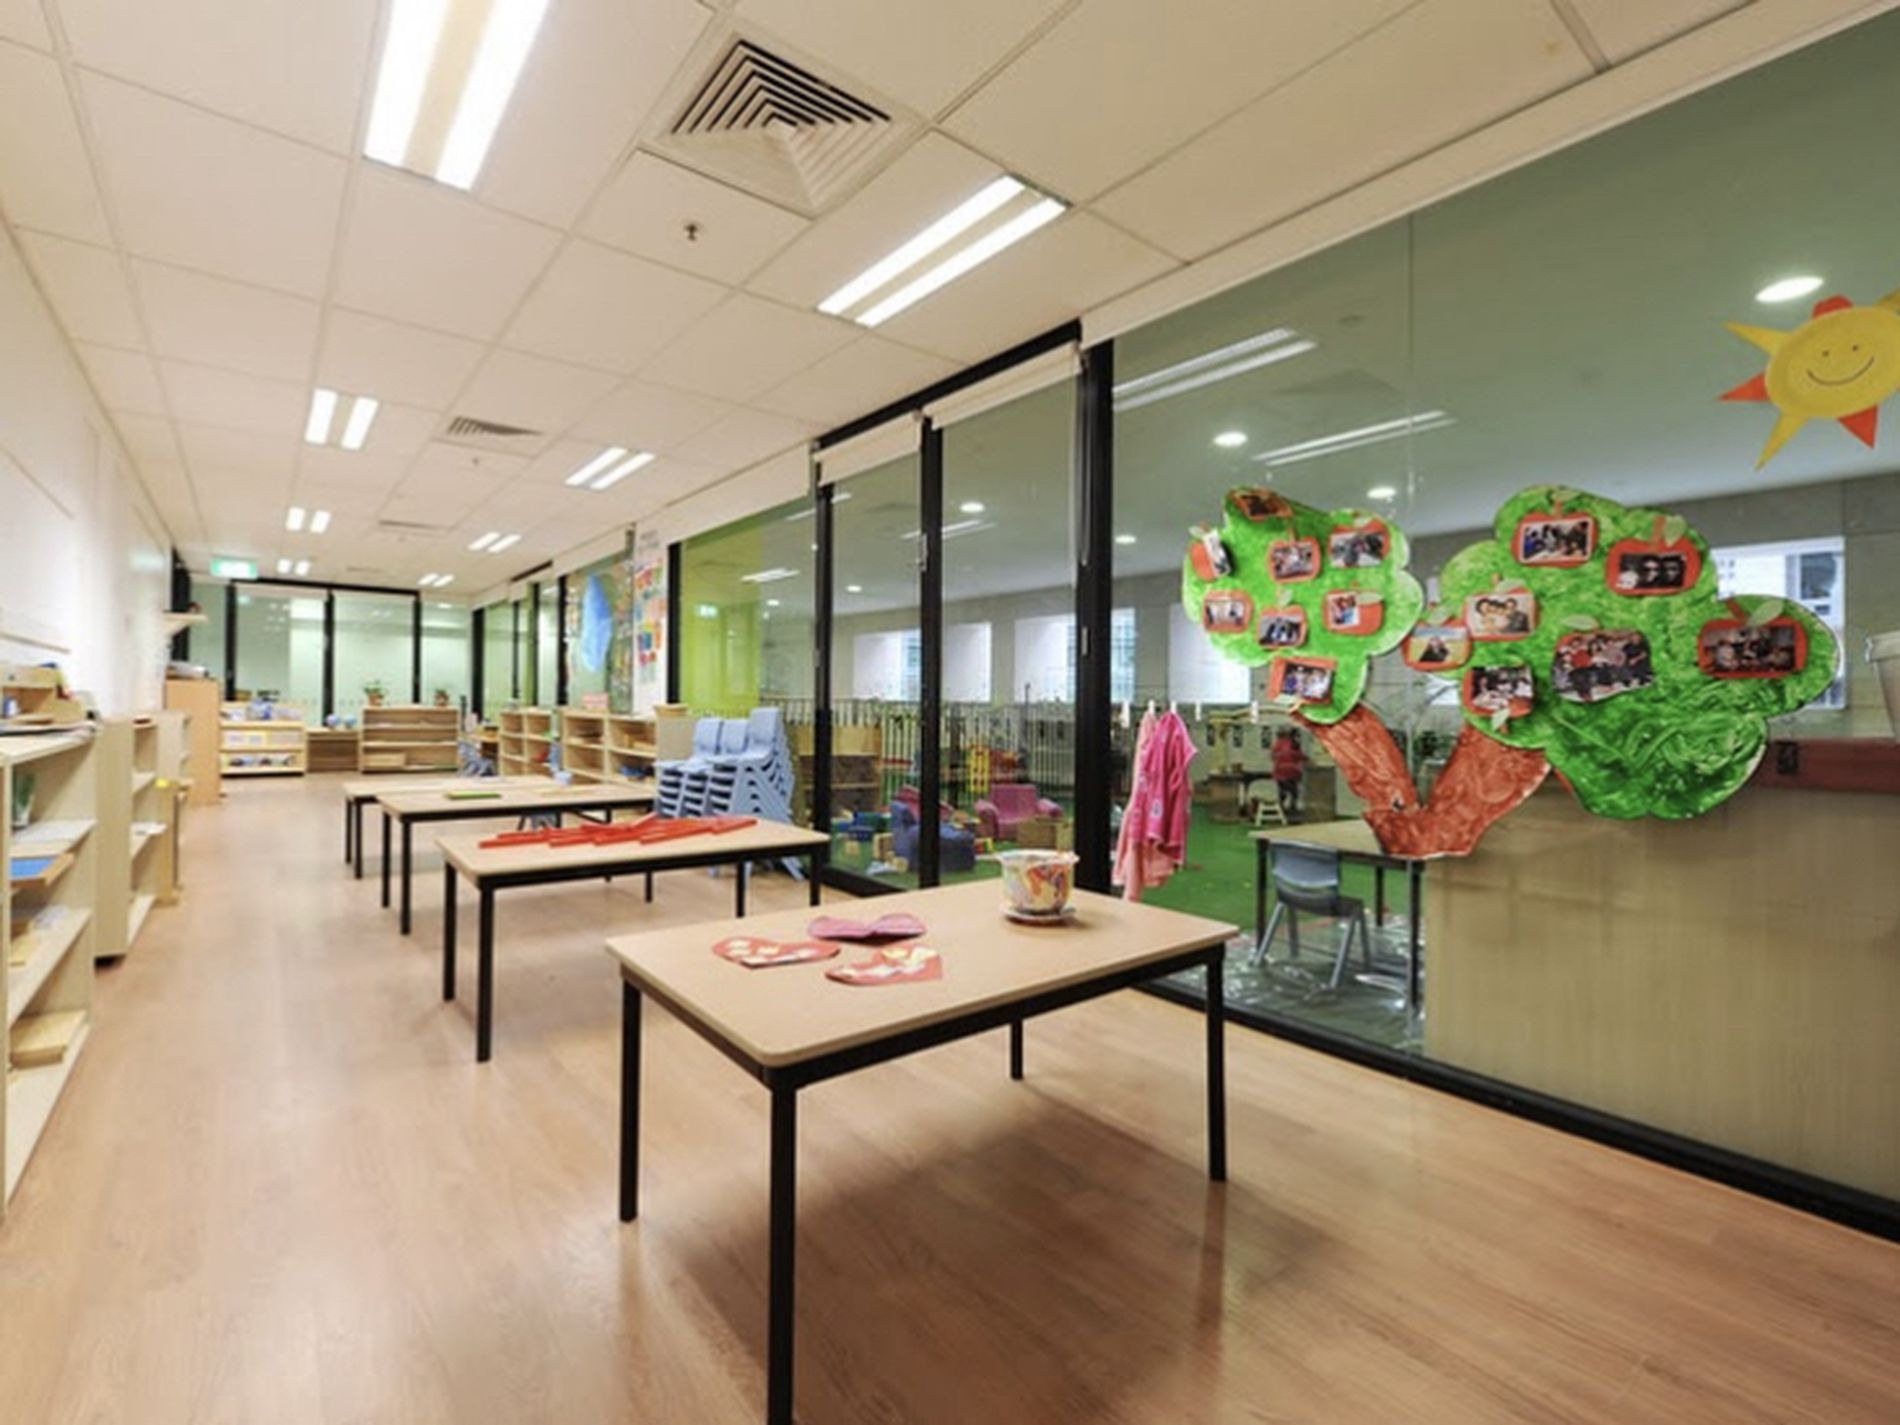 JF2021018 - Childcare center with 58 spaces - in hart of Sydney CBD - great opportunities